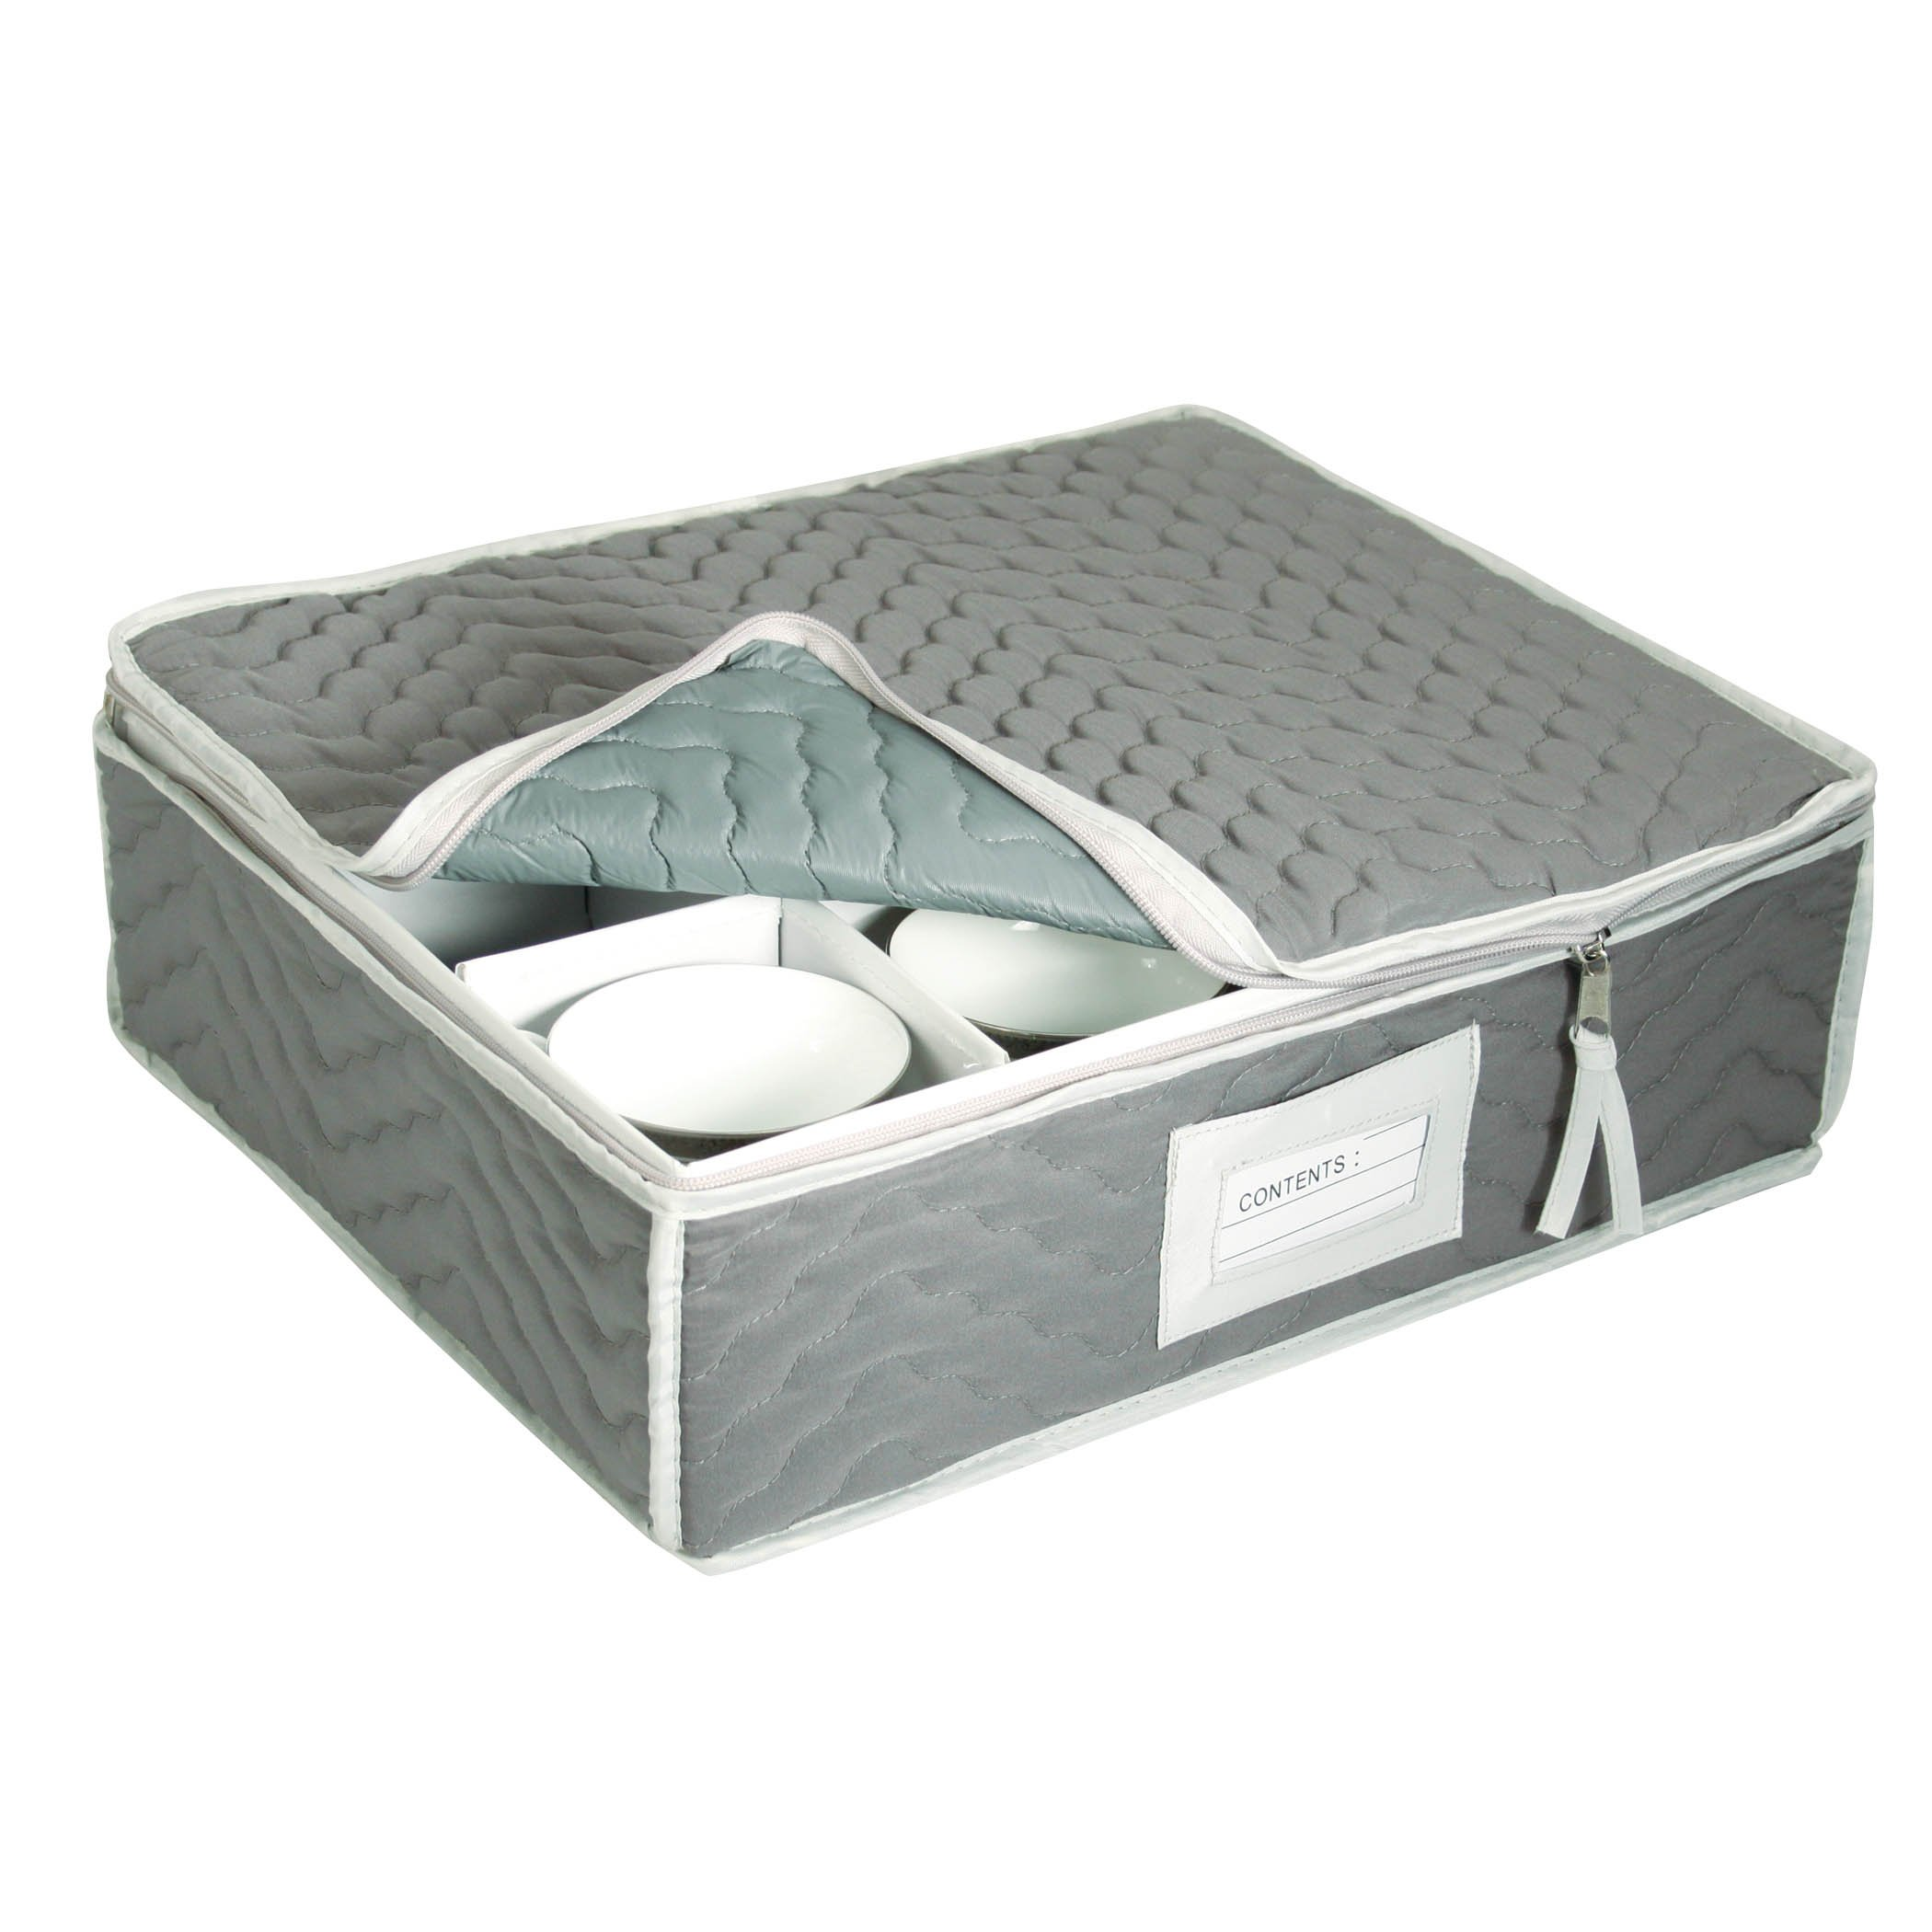 China Cup Storage Chest - Deluxe Quilted Microfiber (Light Gray) (13''H x 15.5''W x 5''D)